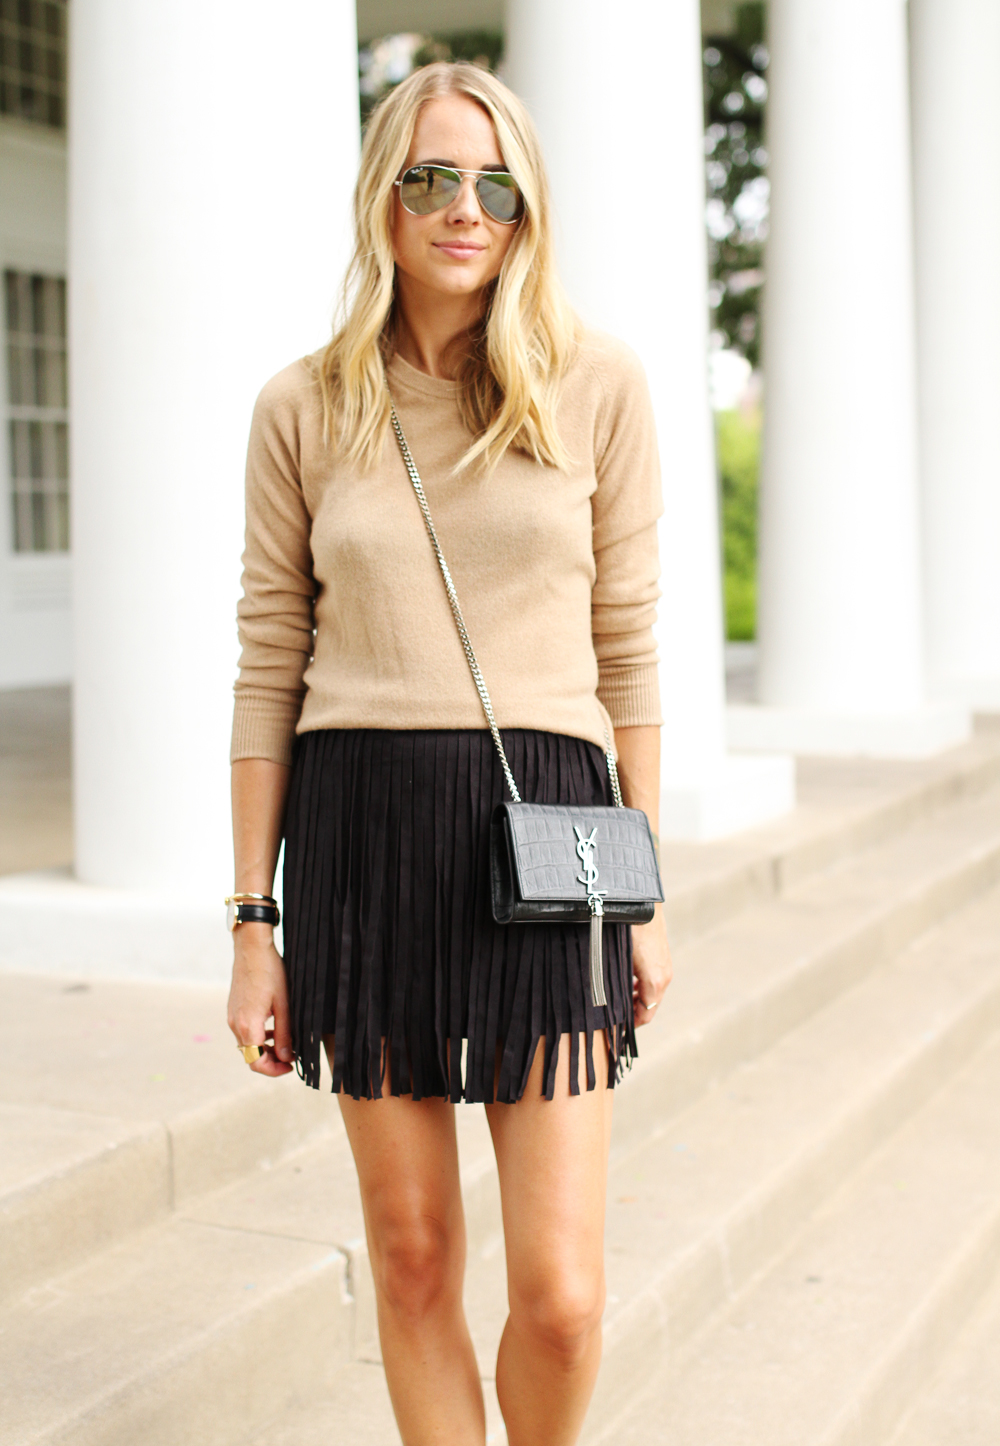 Fringe Mini Skirt Fashion Jackson